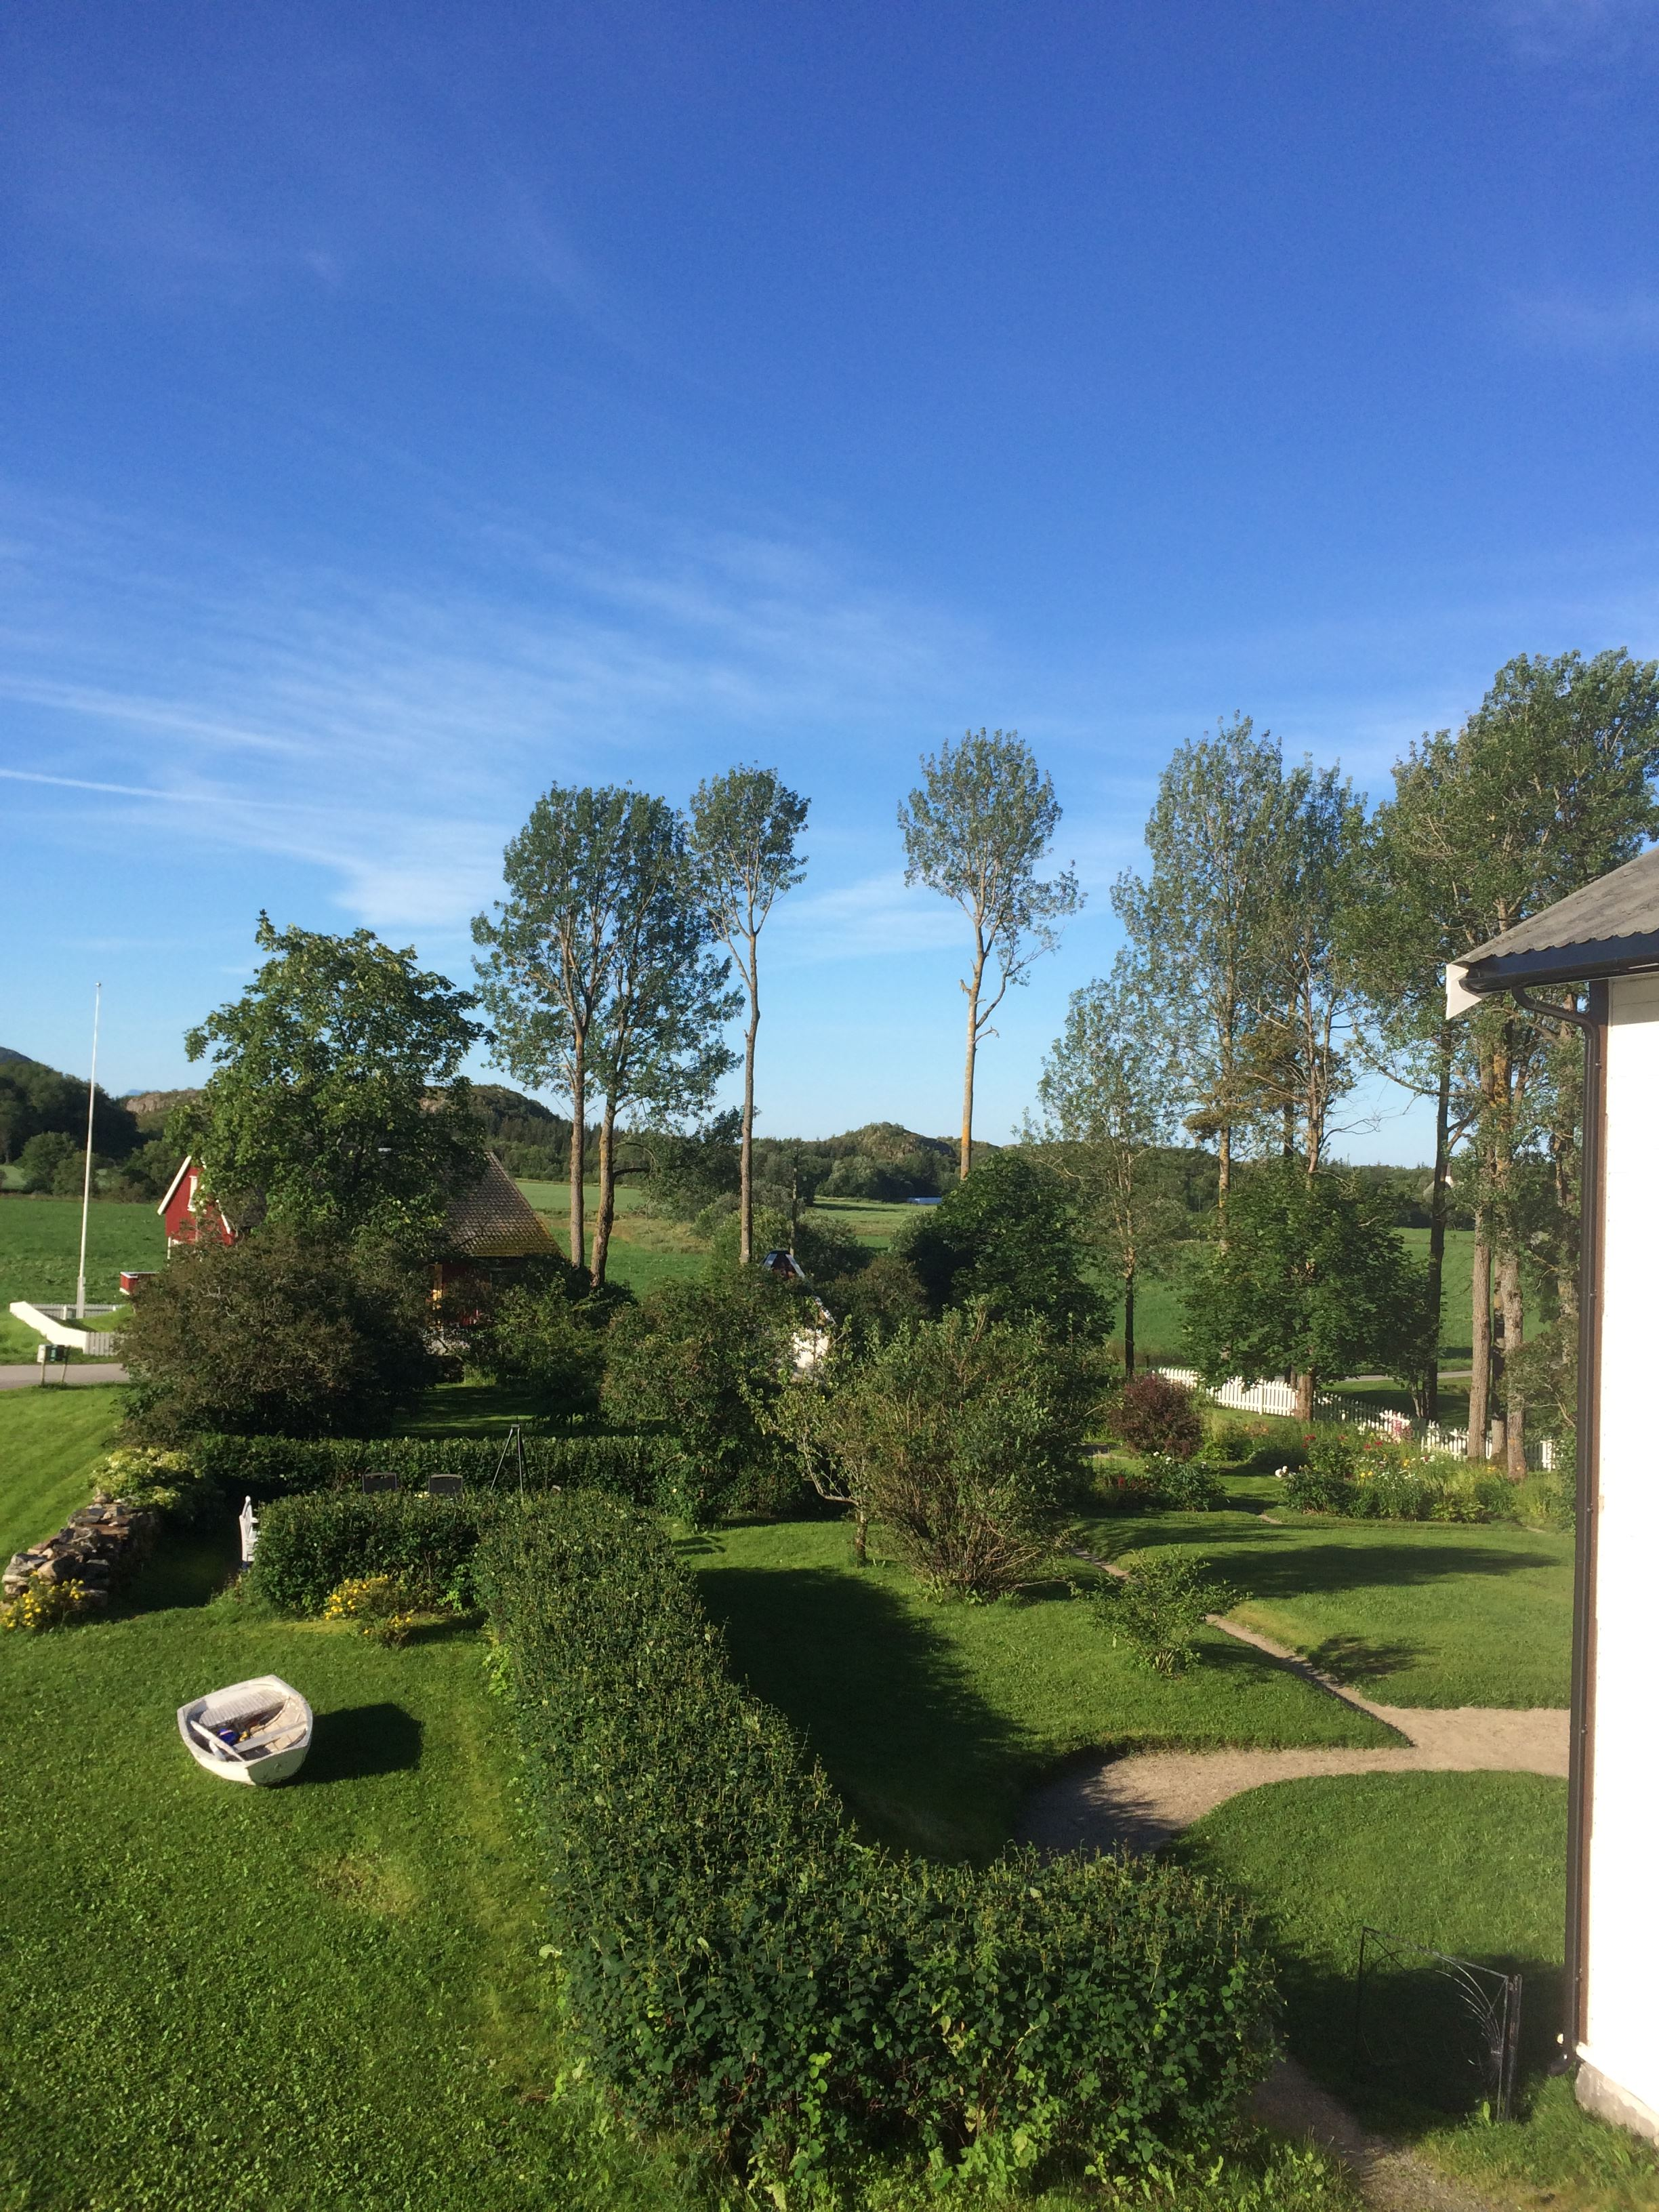 Lurøy Farm - Renaissance gardens near the Arctic Circle